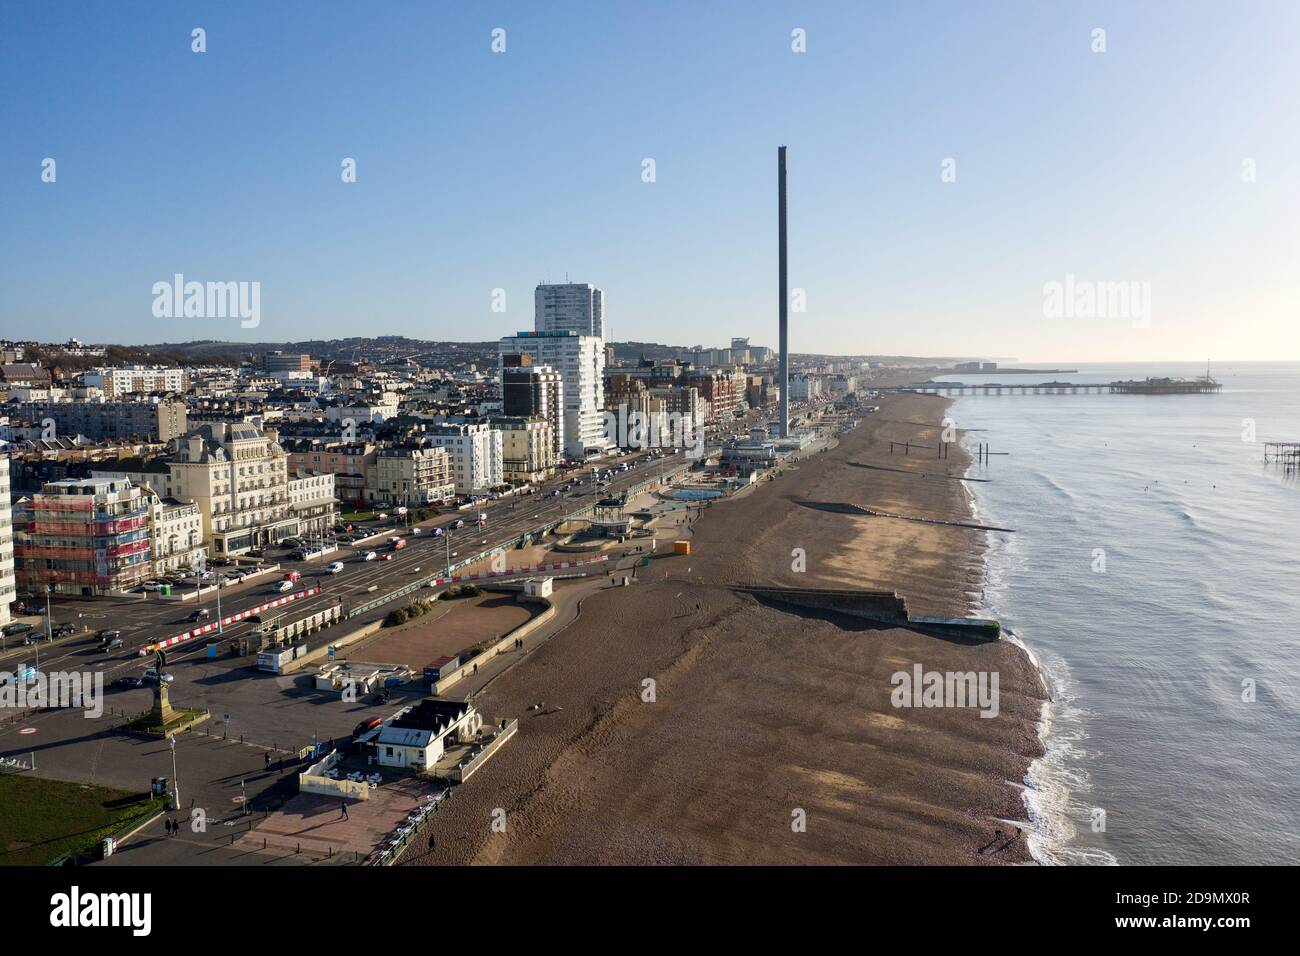 Aerial view along and over the seafront of Brighton City with the famous attractions in this popular resort.. Stock Photo